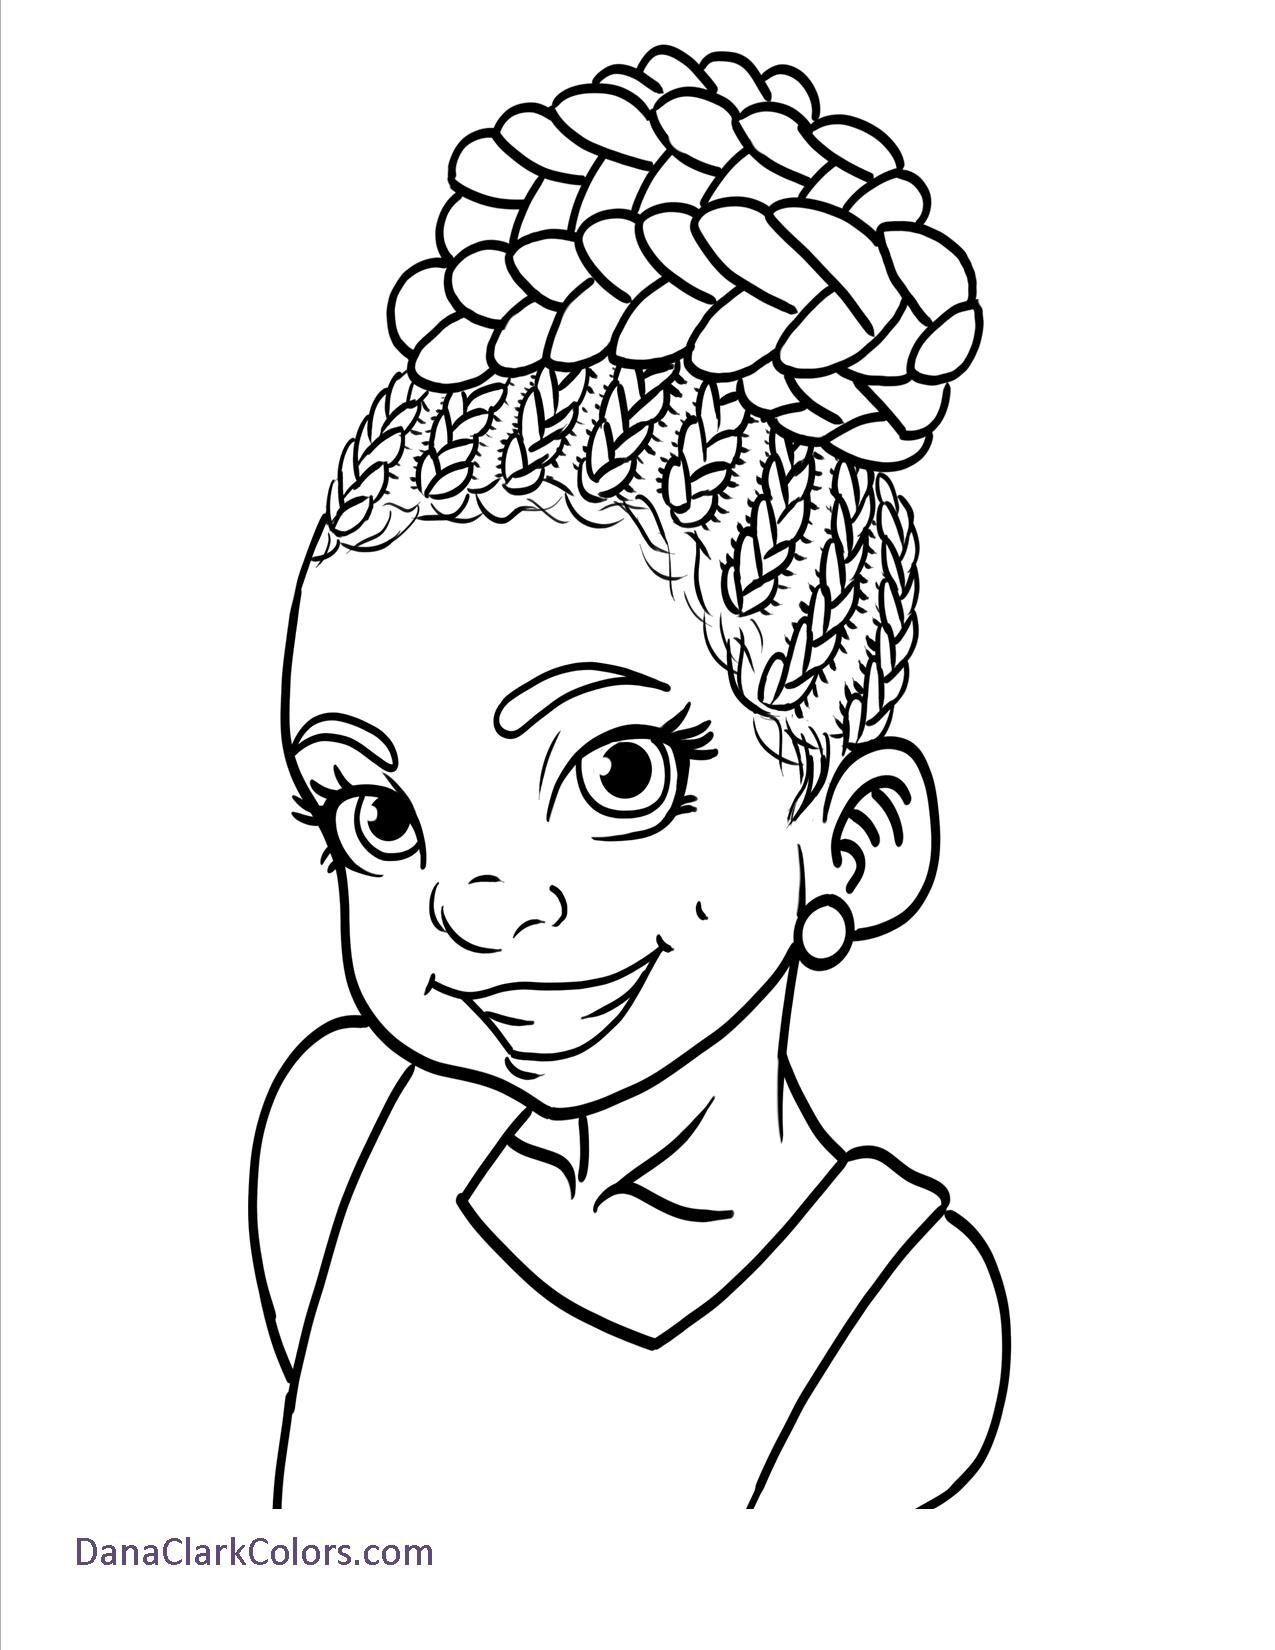 cardi b coloring sheets cardi b coloring pages easy color corporatetechniquescom cardi coloring b sheets